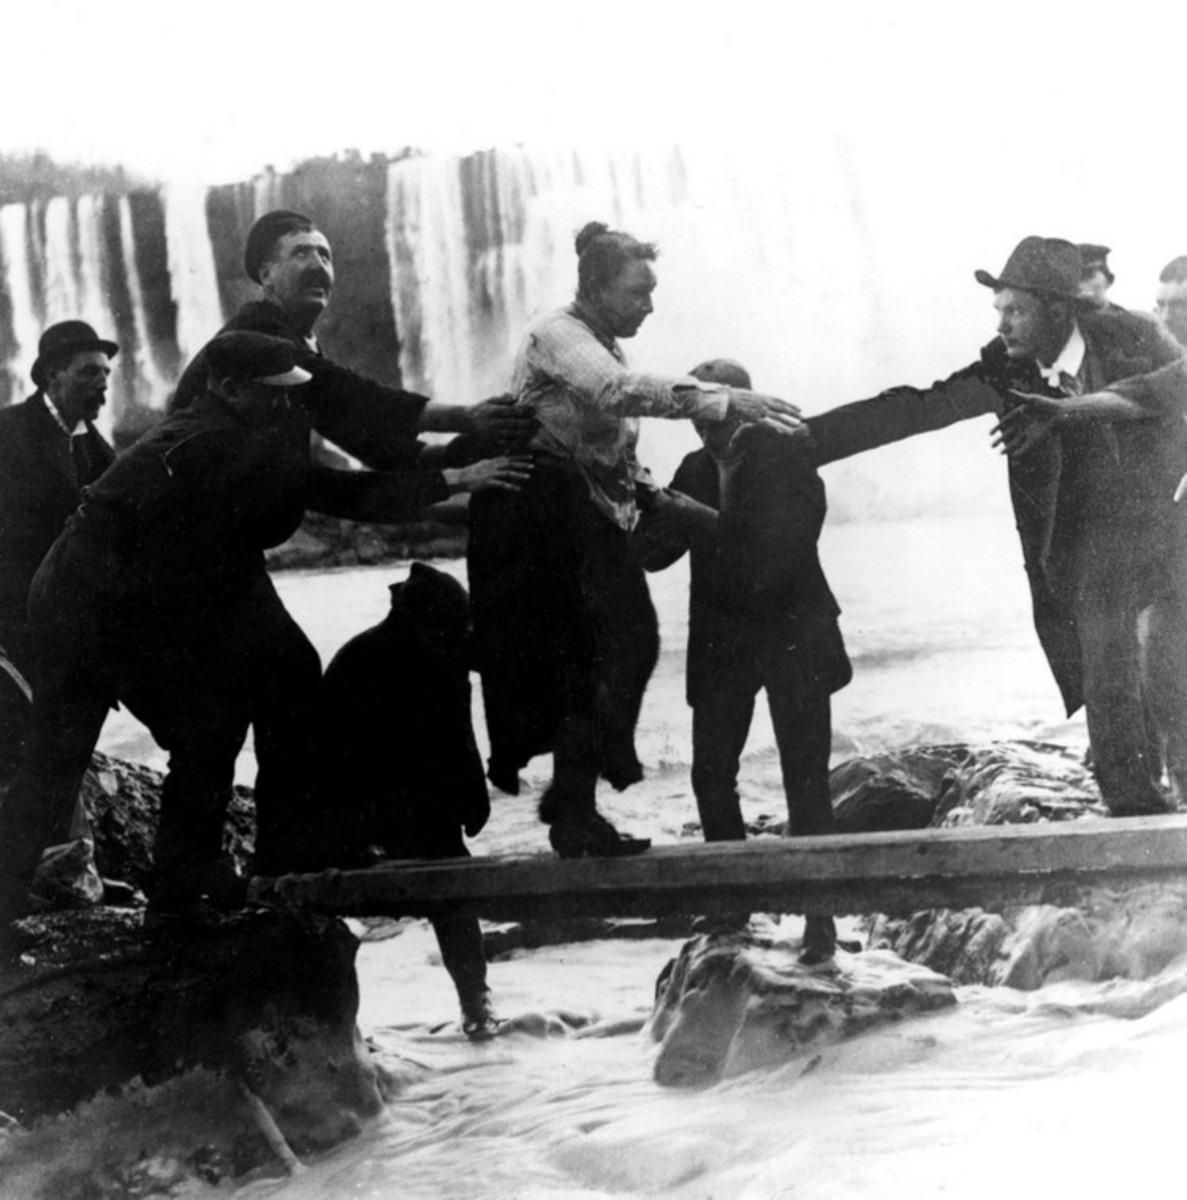 Annie Taylor being helped to shore after surviving stunt